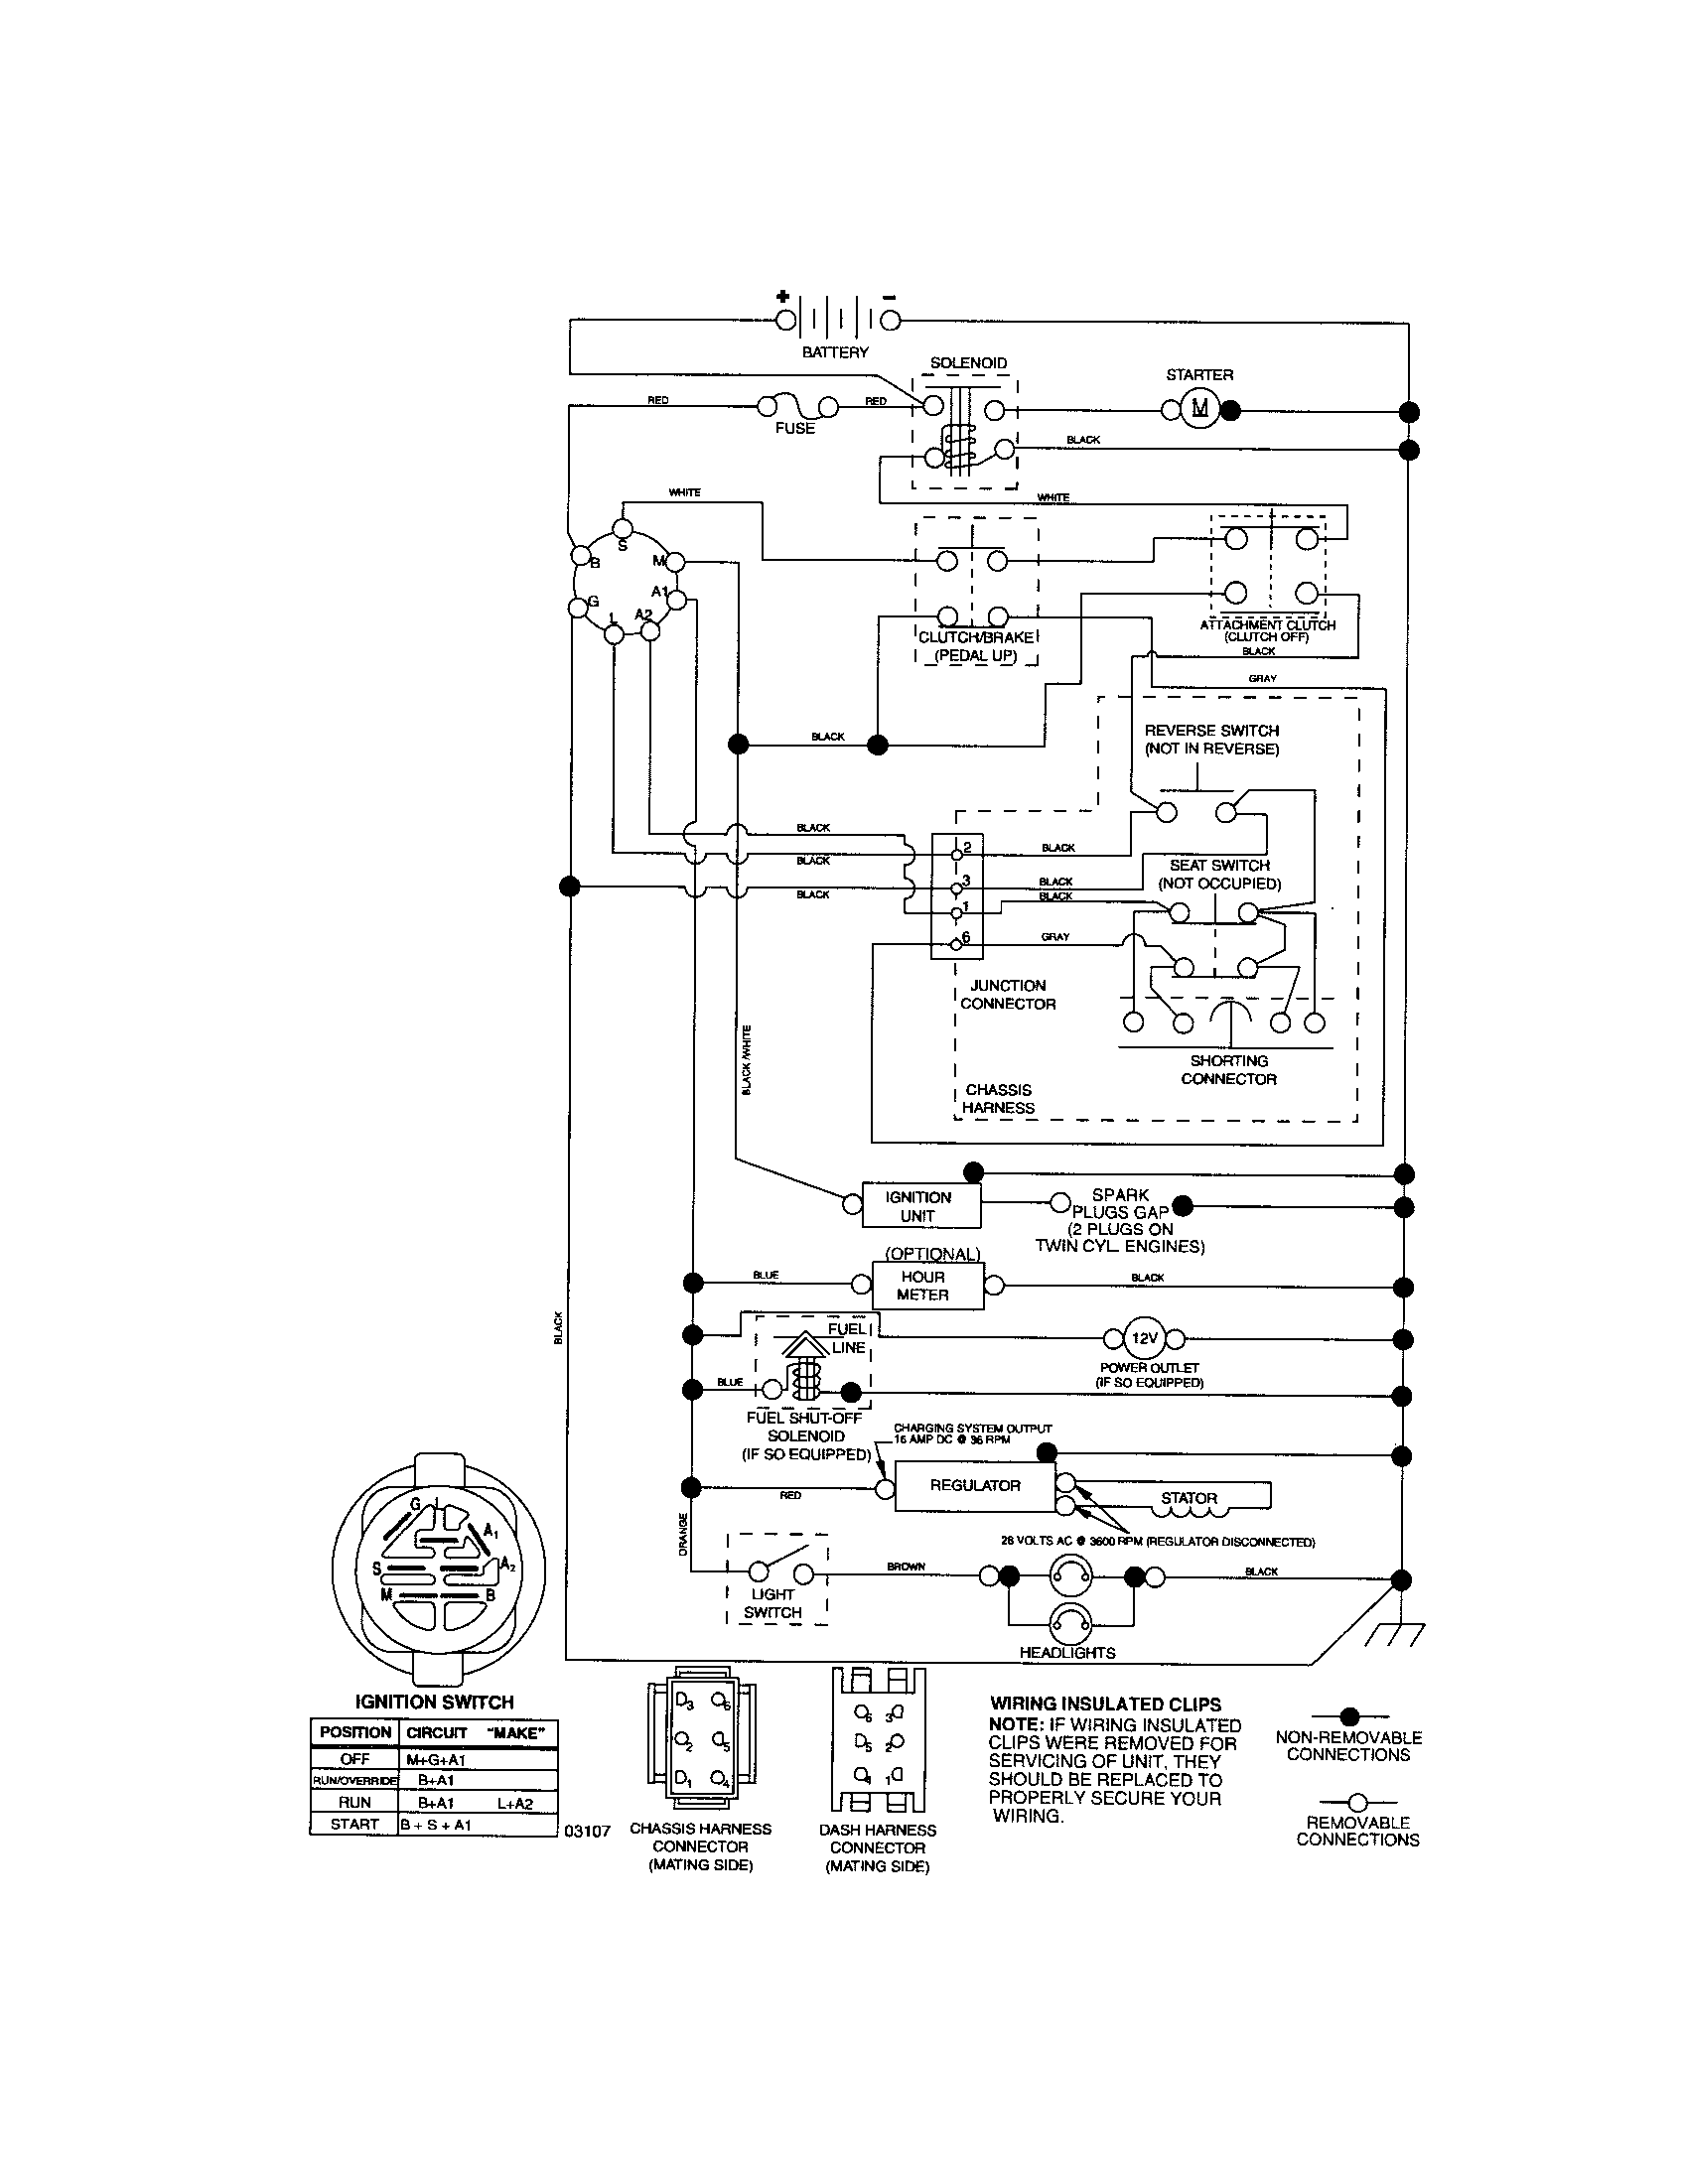 6af5f1447fd13c8443376822ddc1e105 craftsman riding mower electrical diagram wiring diagram  at gsmx.co